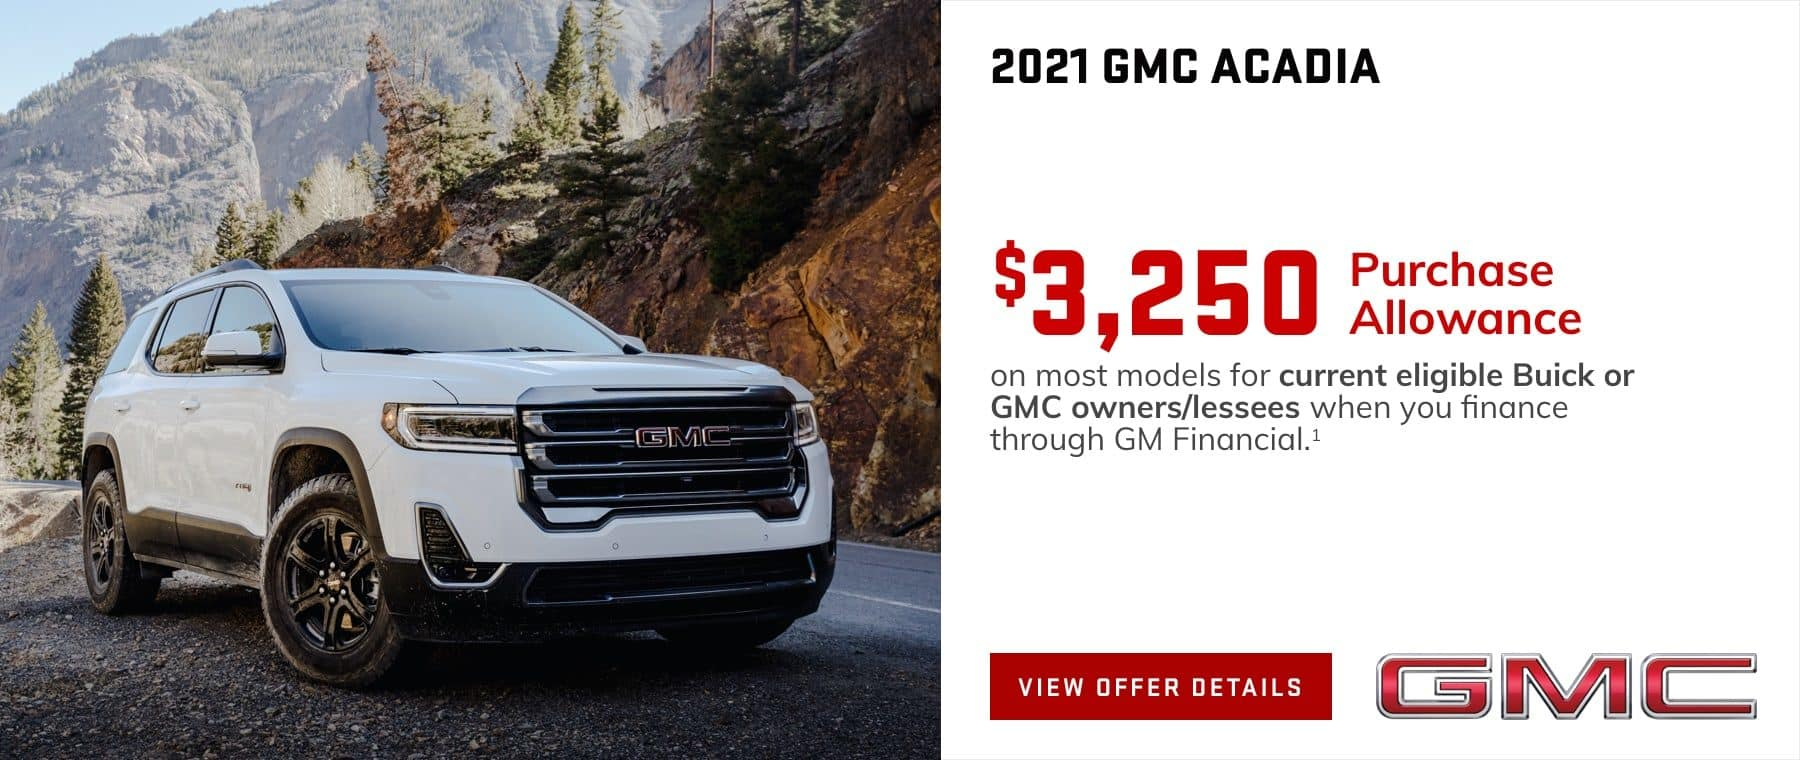 $3,250 Purchase Allowance on most models for current eligible Buick or GMC owners/lessees when you finance through GM Financial.1